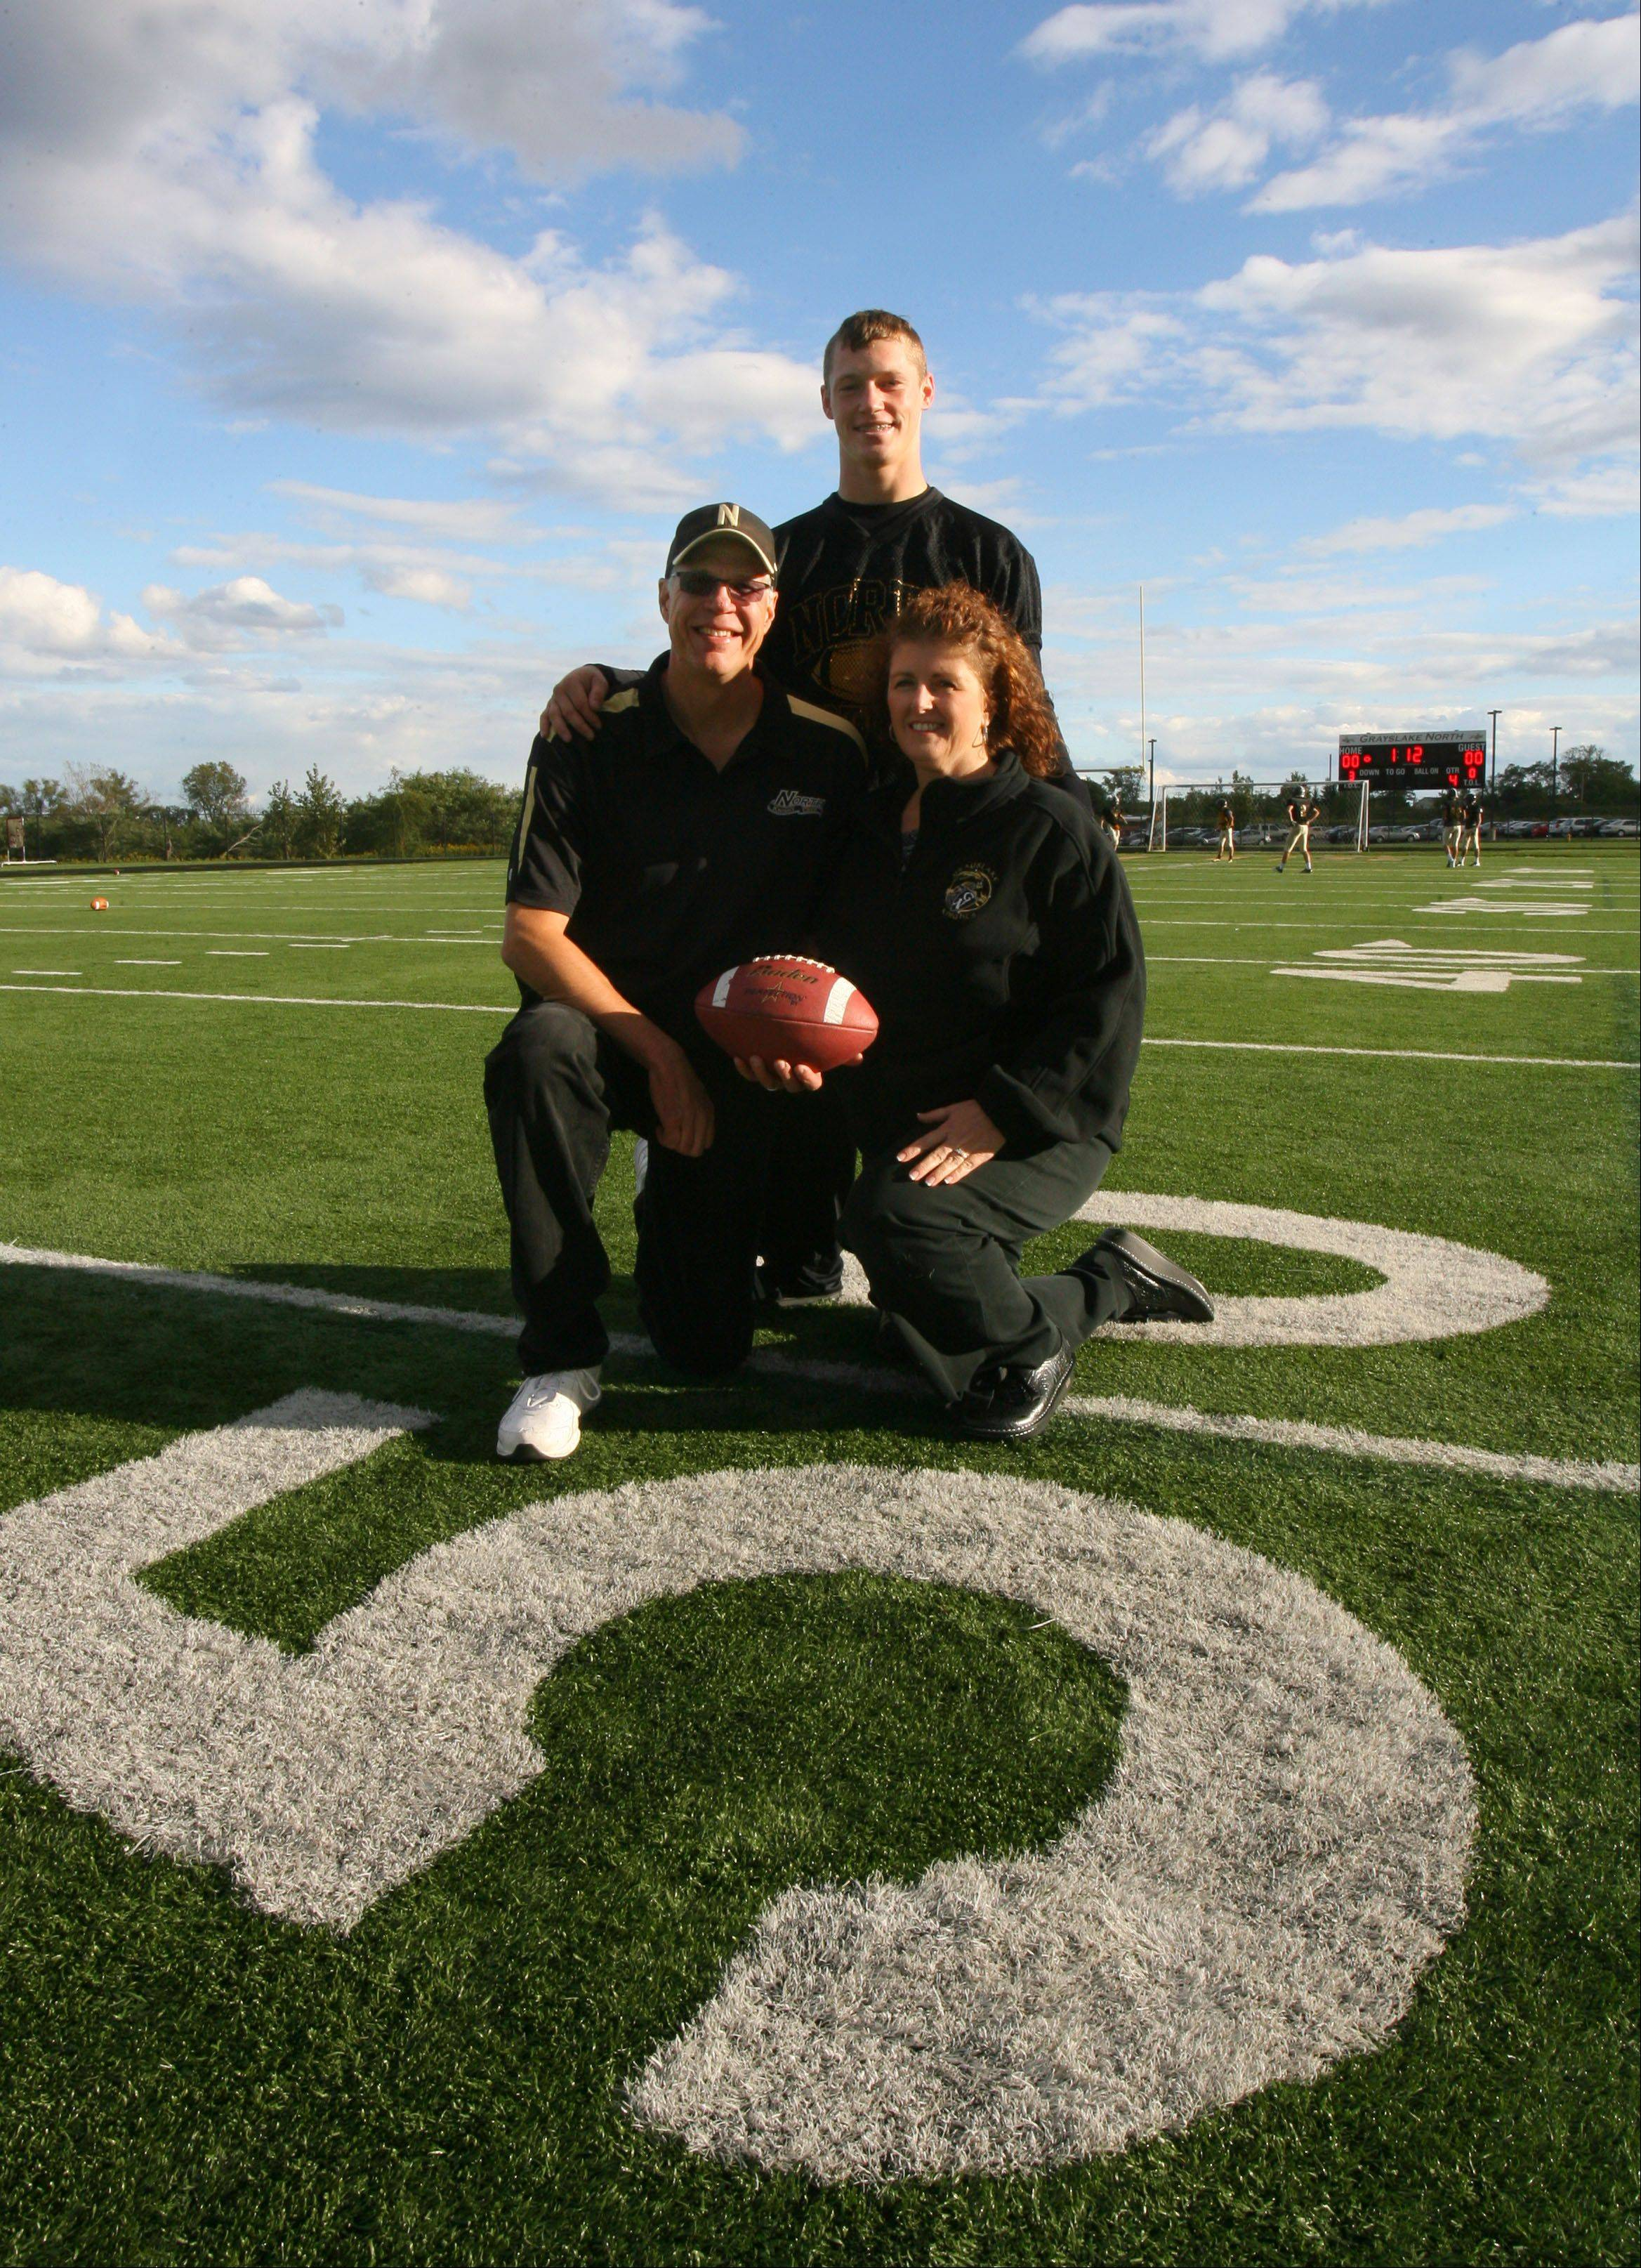 Grayslake North senior linebacker/running back David Collins has had a rough ride in his young life, but Jamie and Jay Gustafson of Lake Villa now have legal guardianship of Collins. Their support has helped him work through many difficult personal issues.